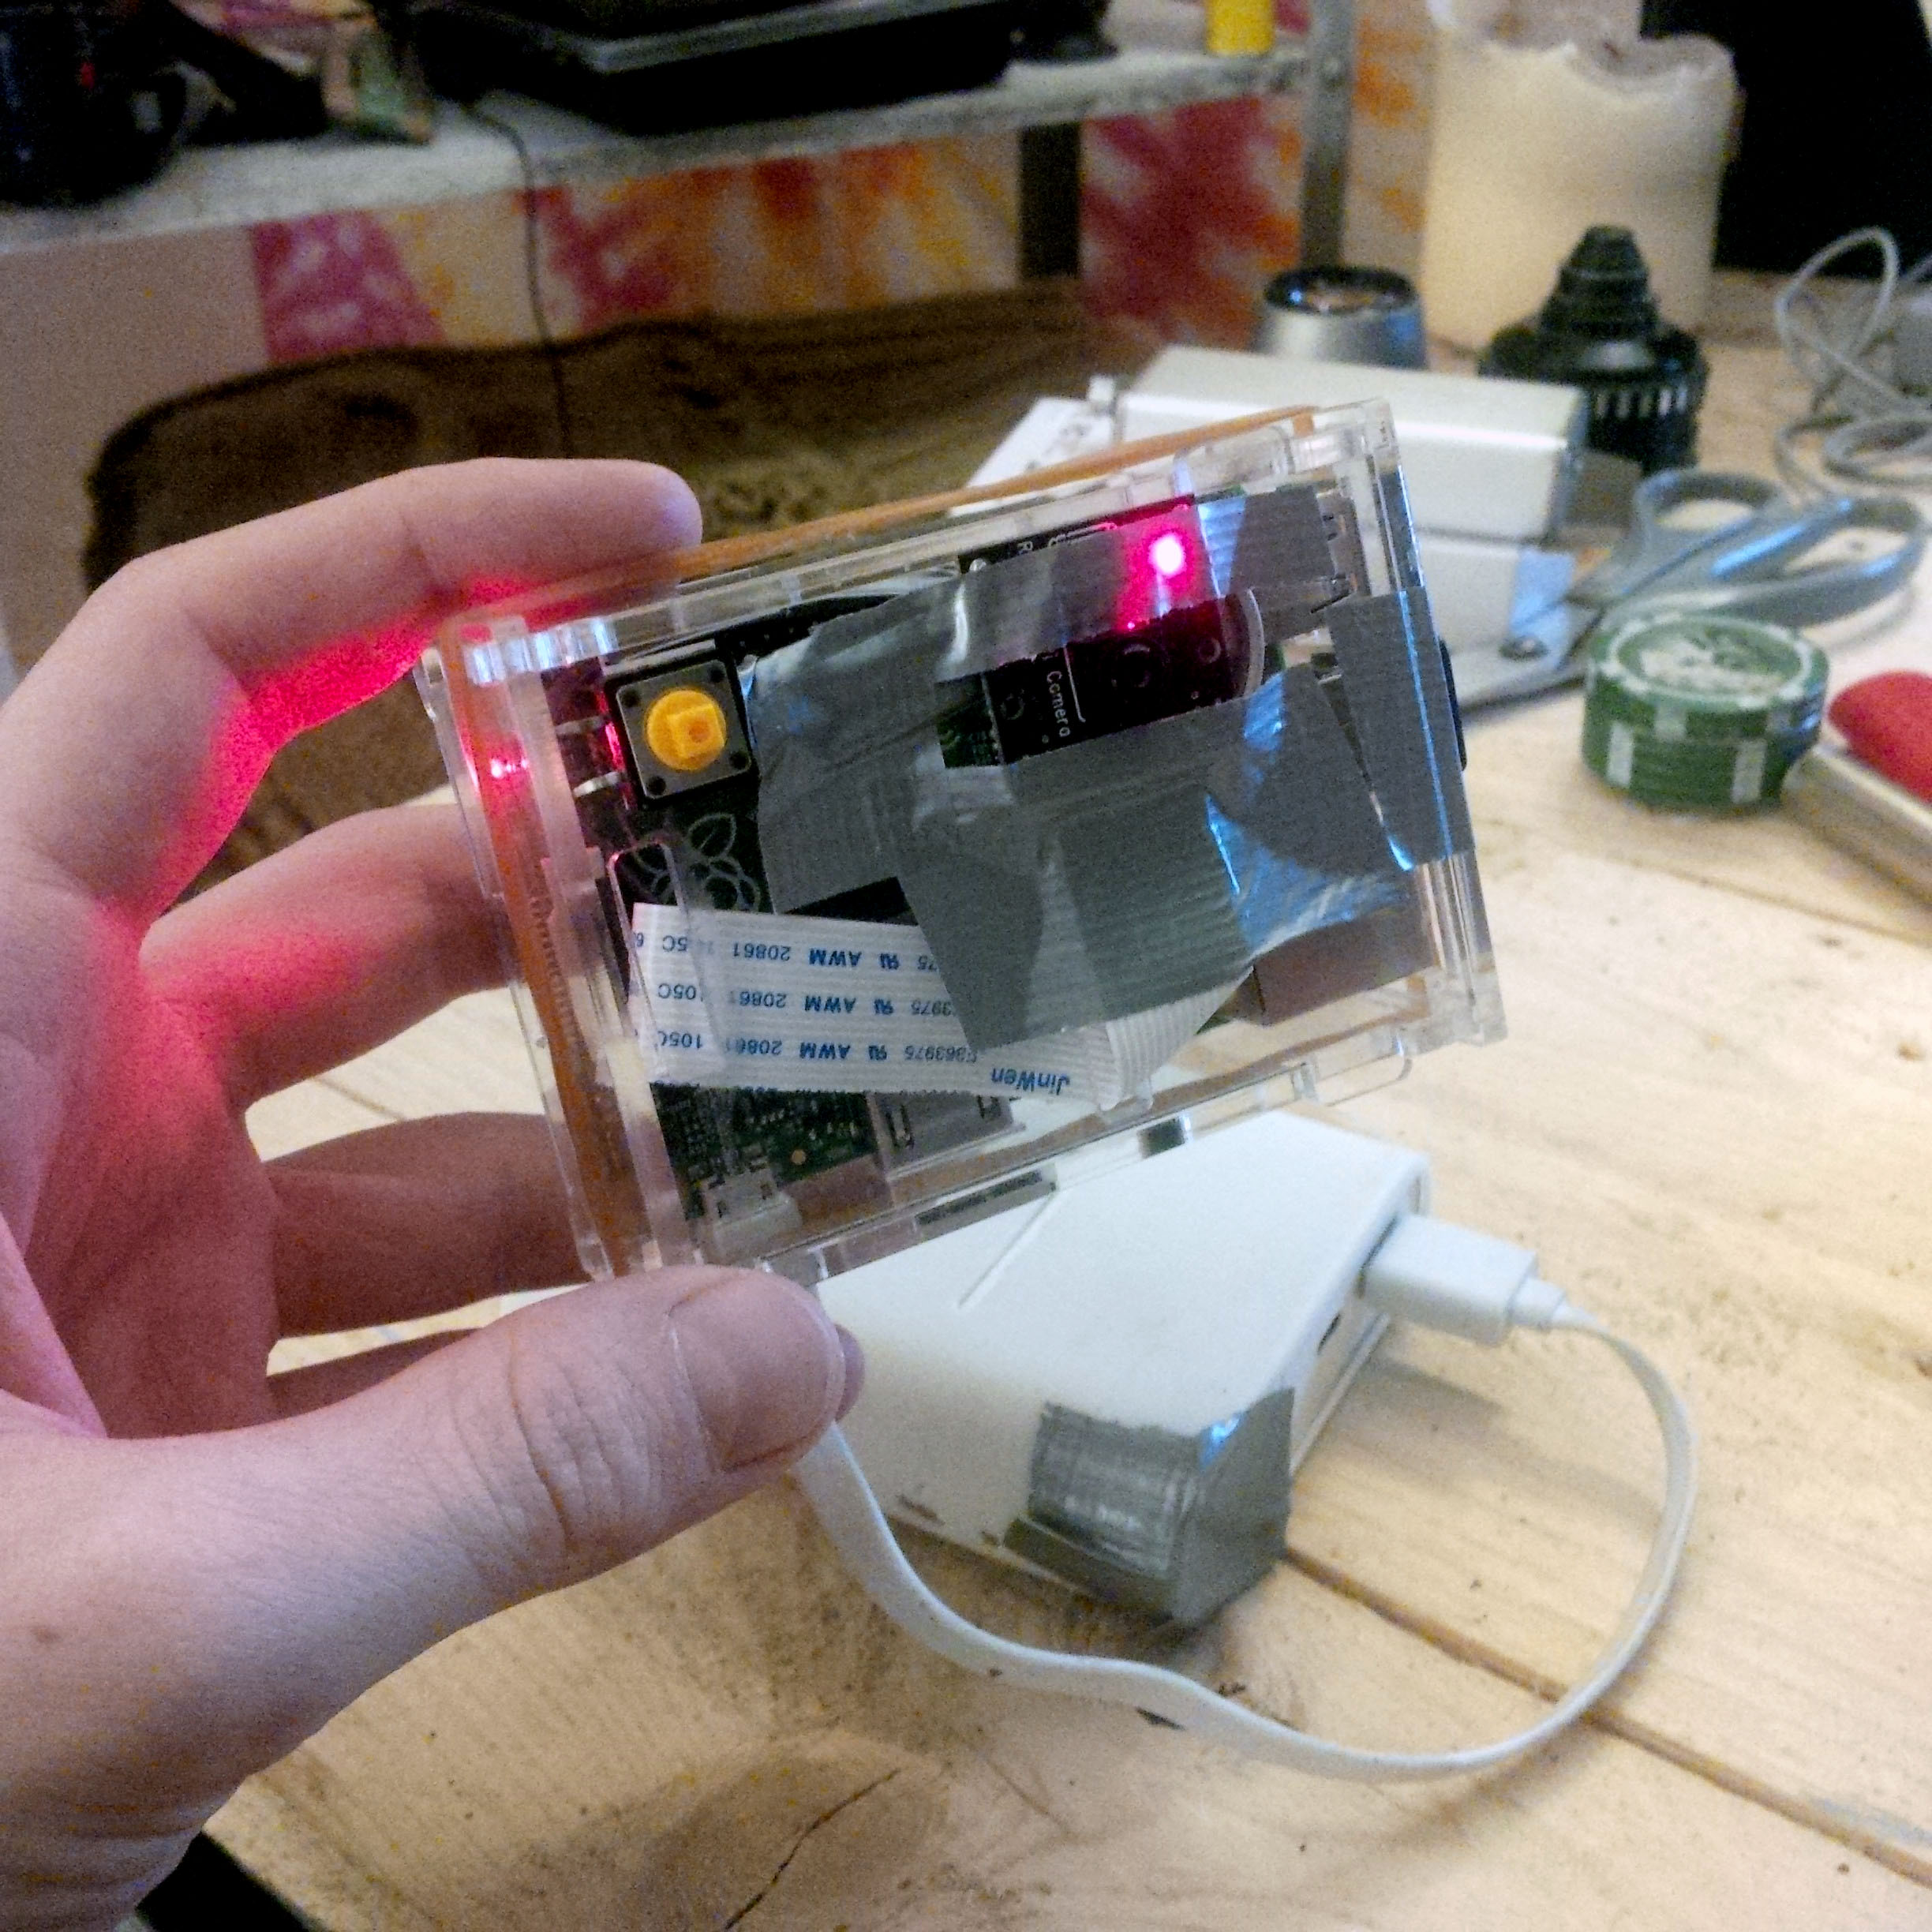 Here's the very simple setup used for the Eye-Pi